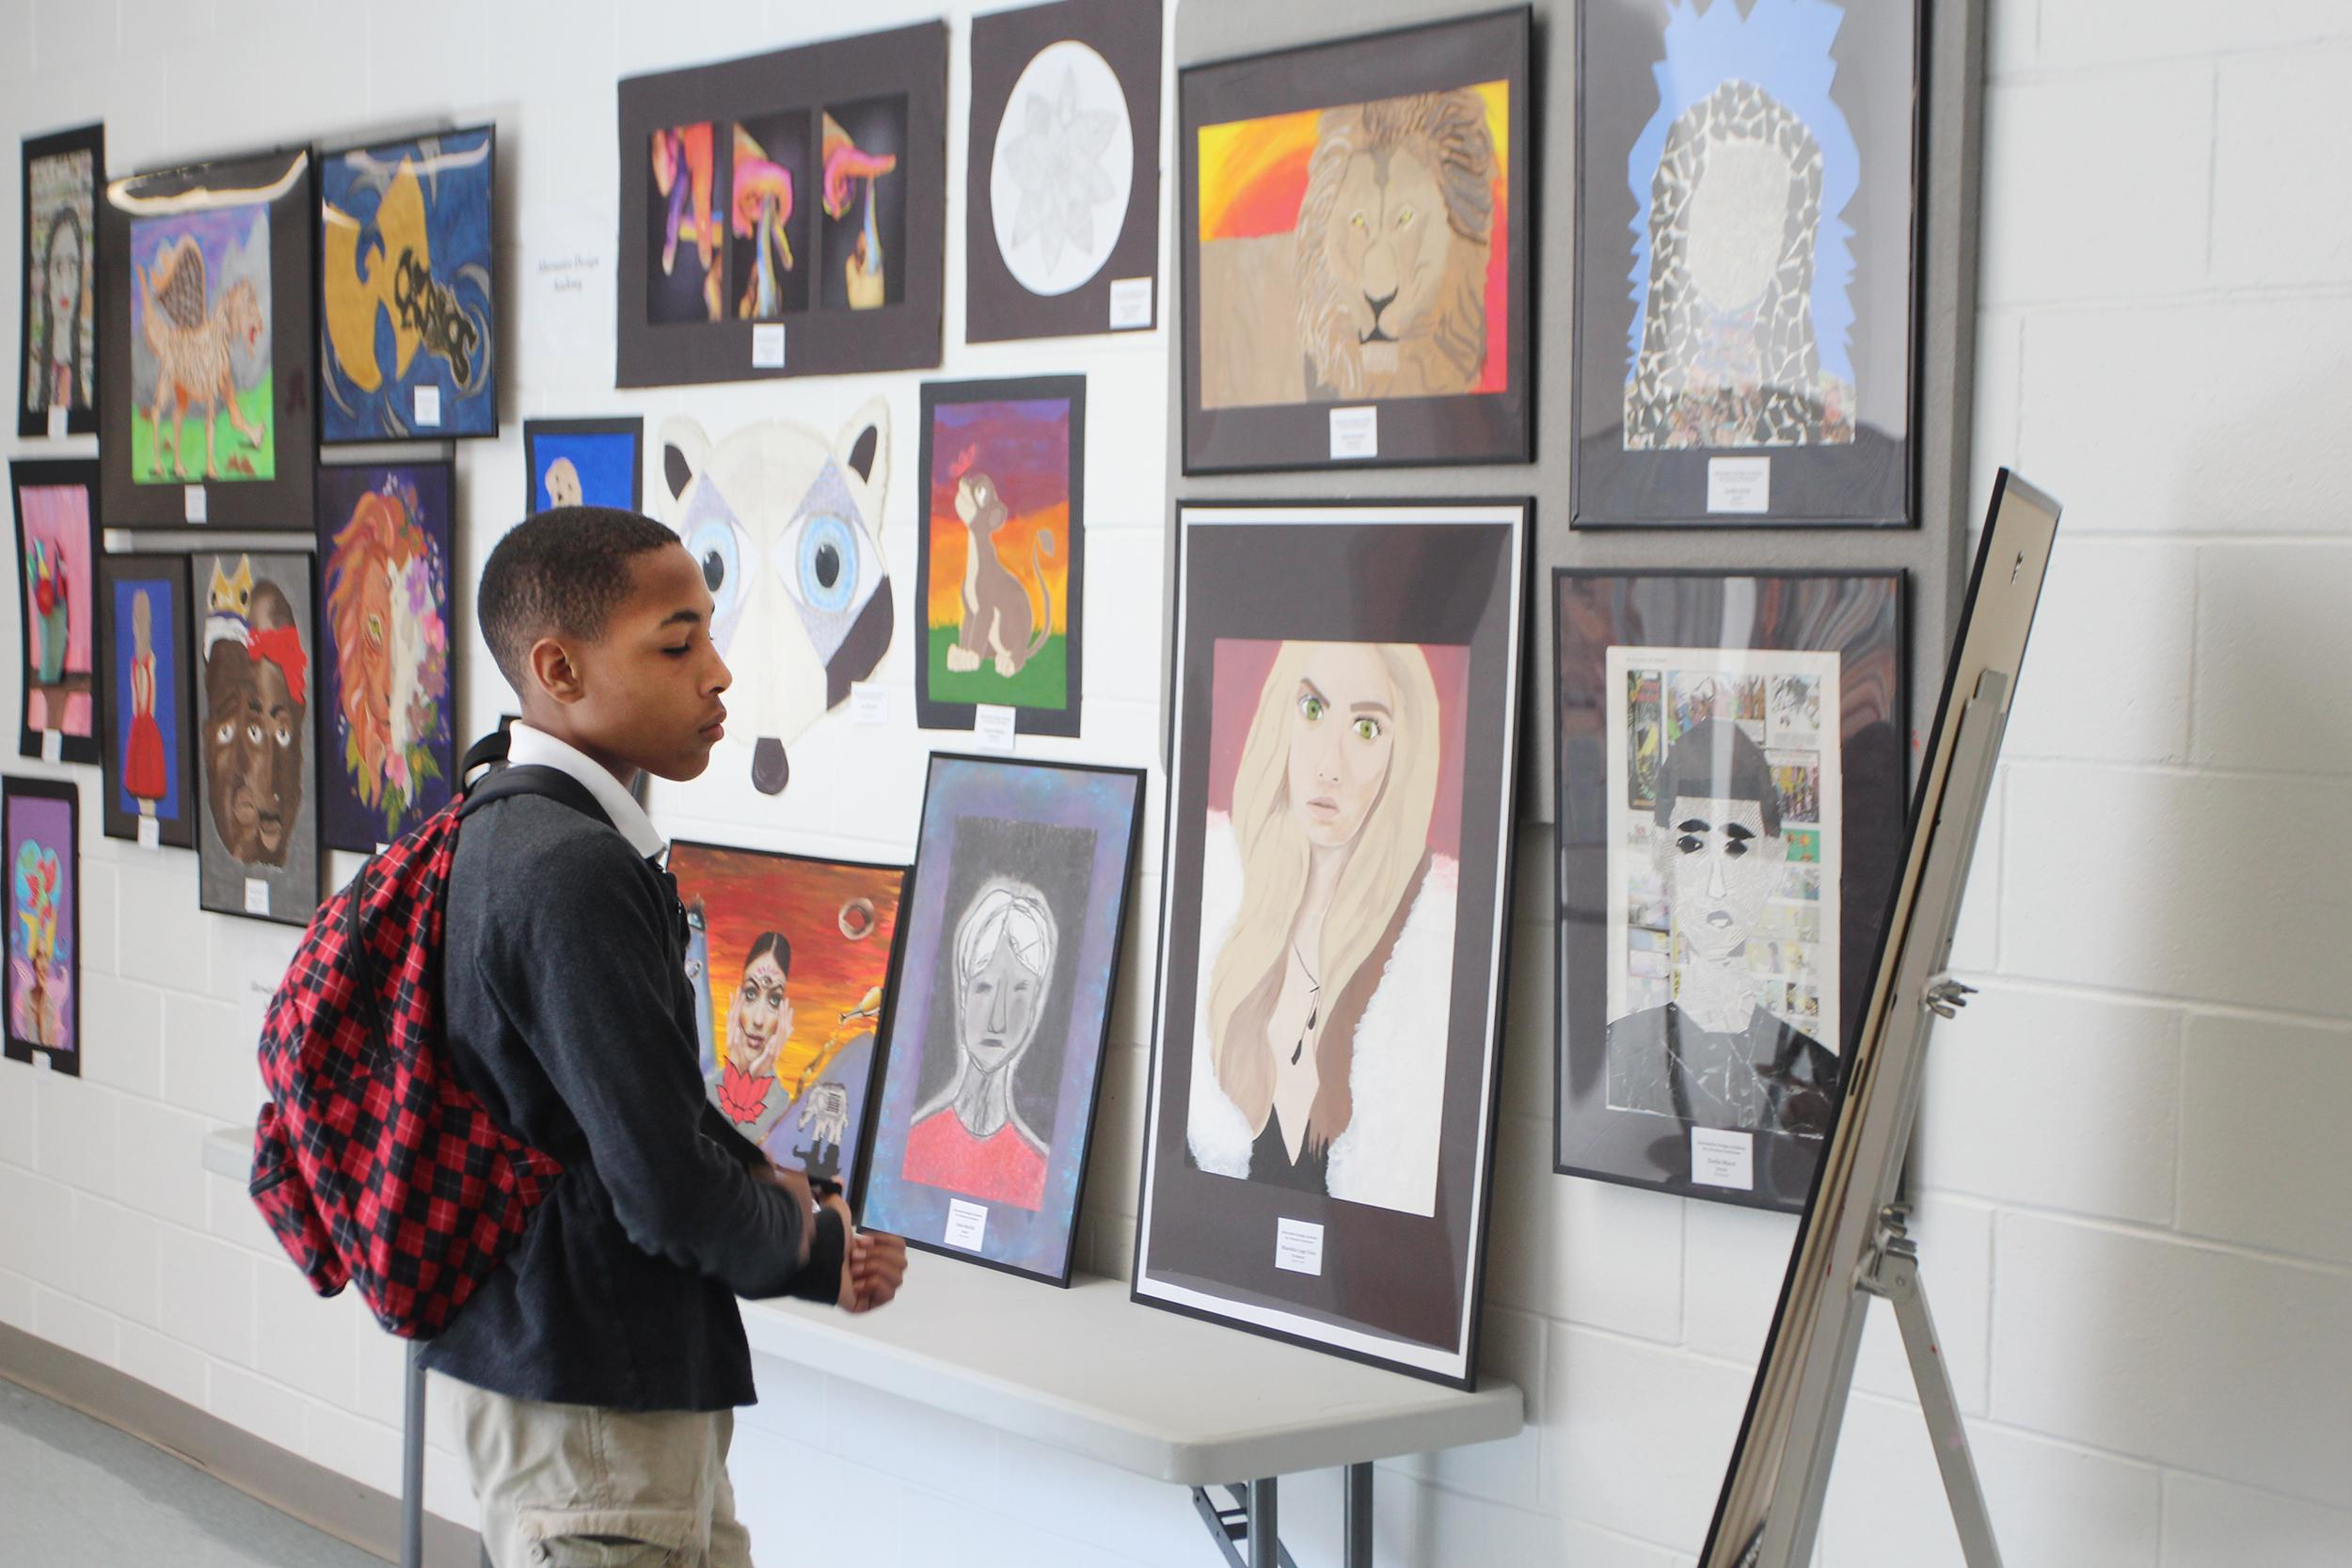 Student looking at art work on dispaly